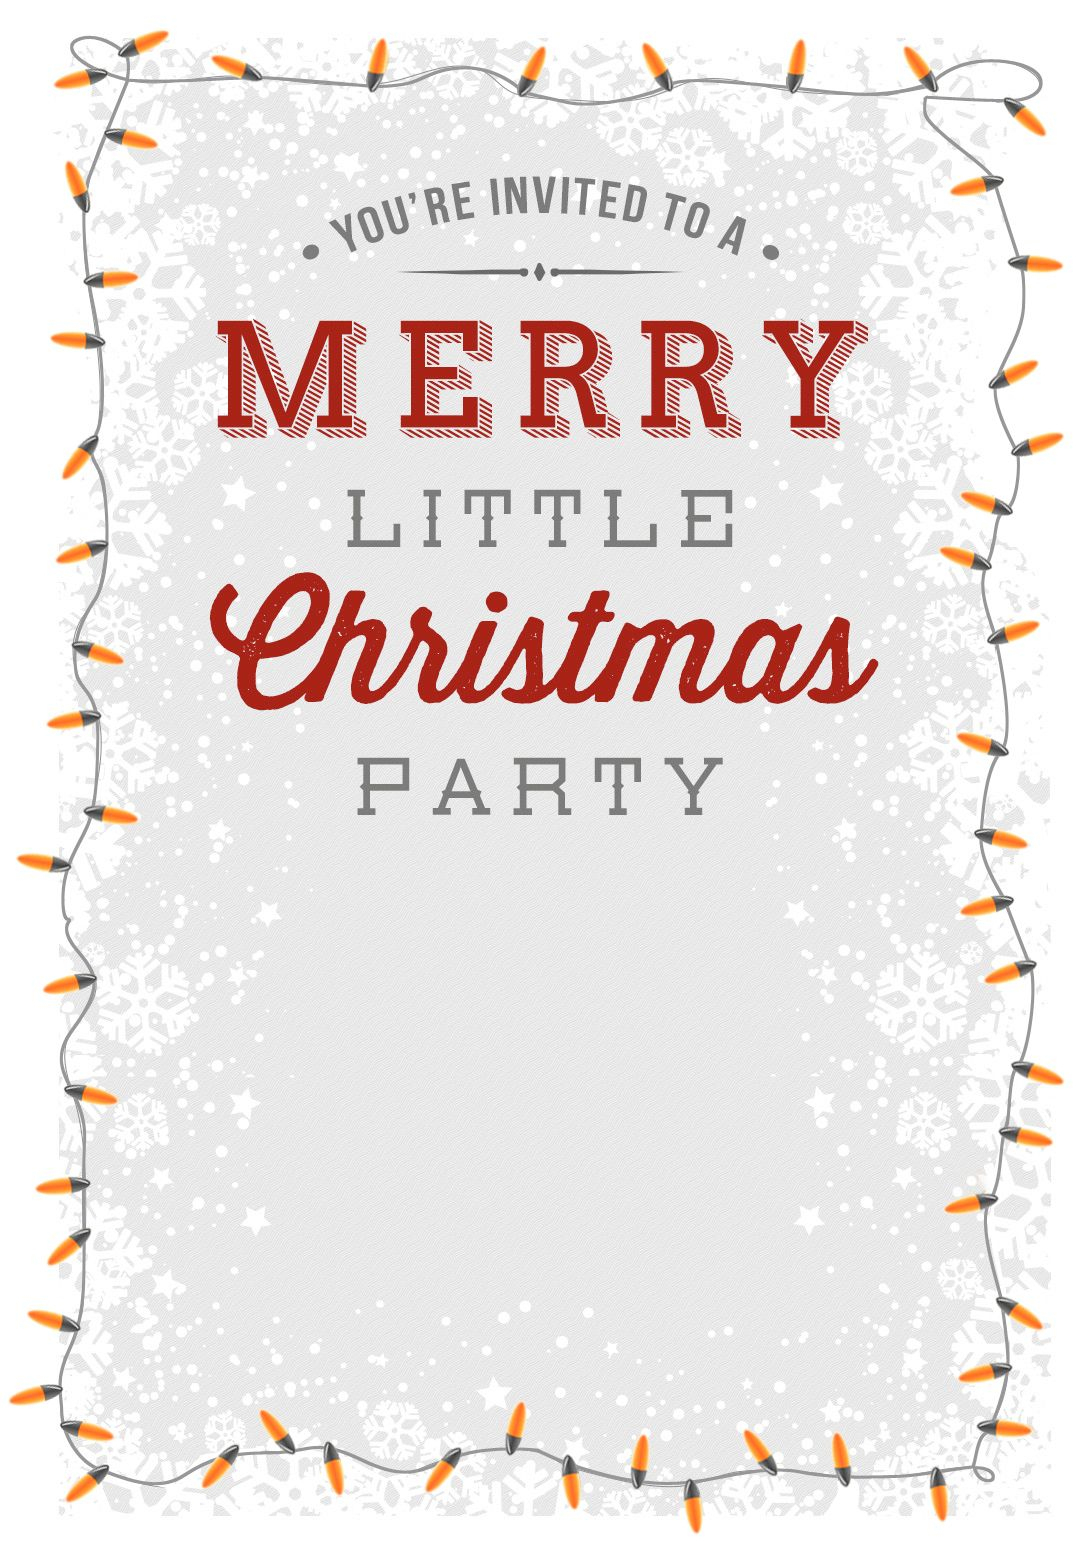 A Merry Little Party - Free Printable Christmas Invitation Template - Free Printable Christmas Invitations